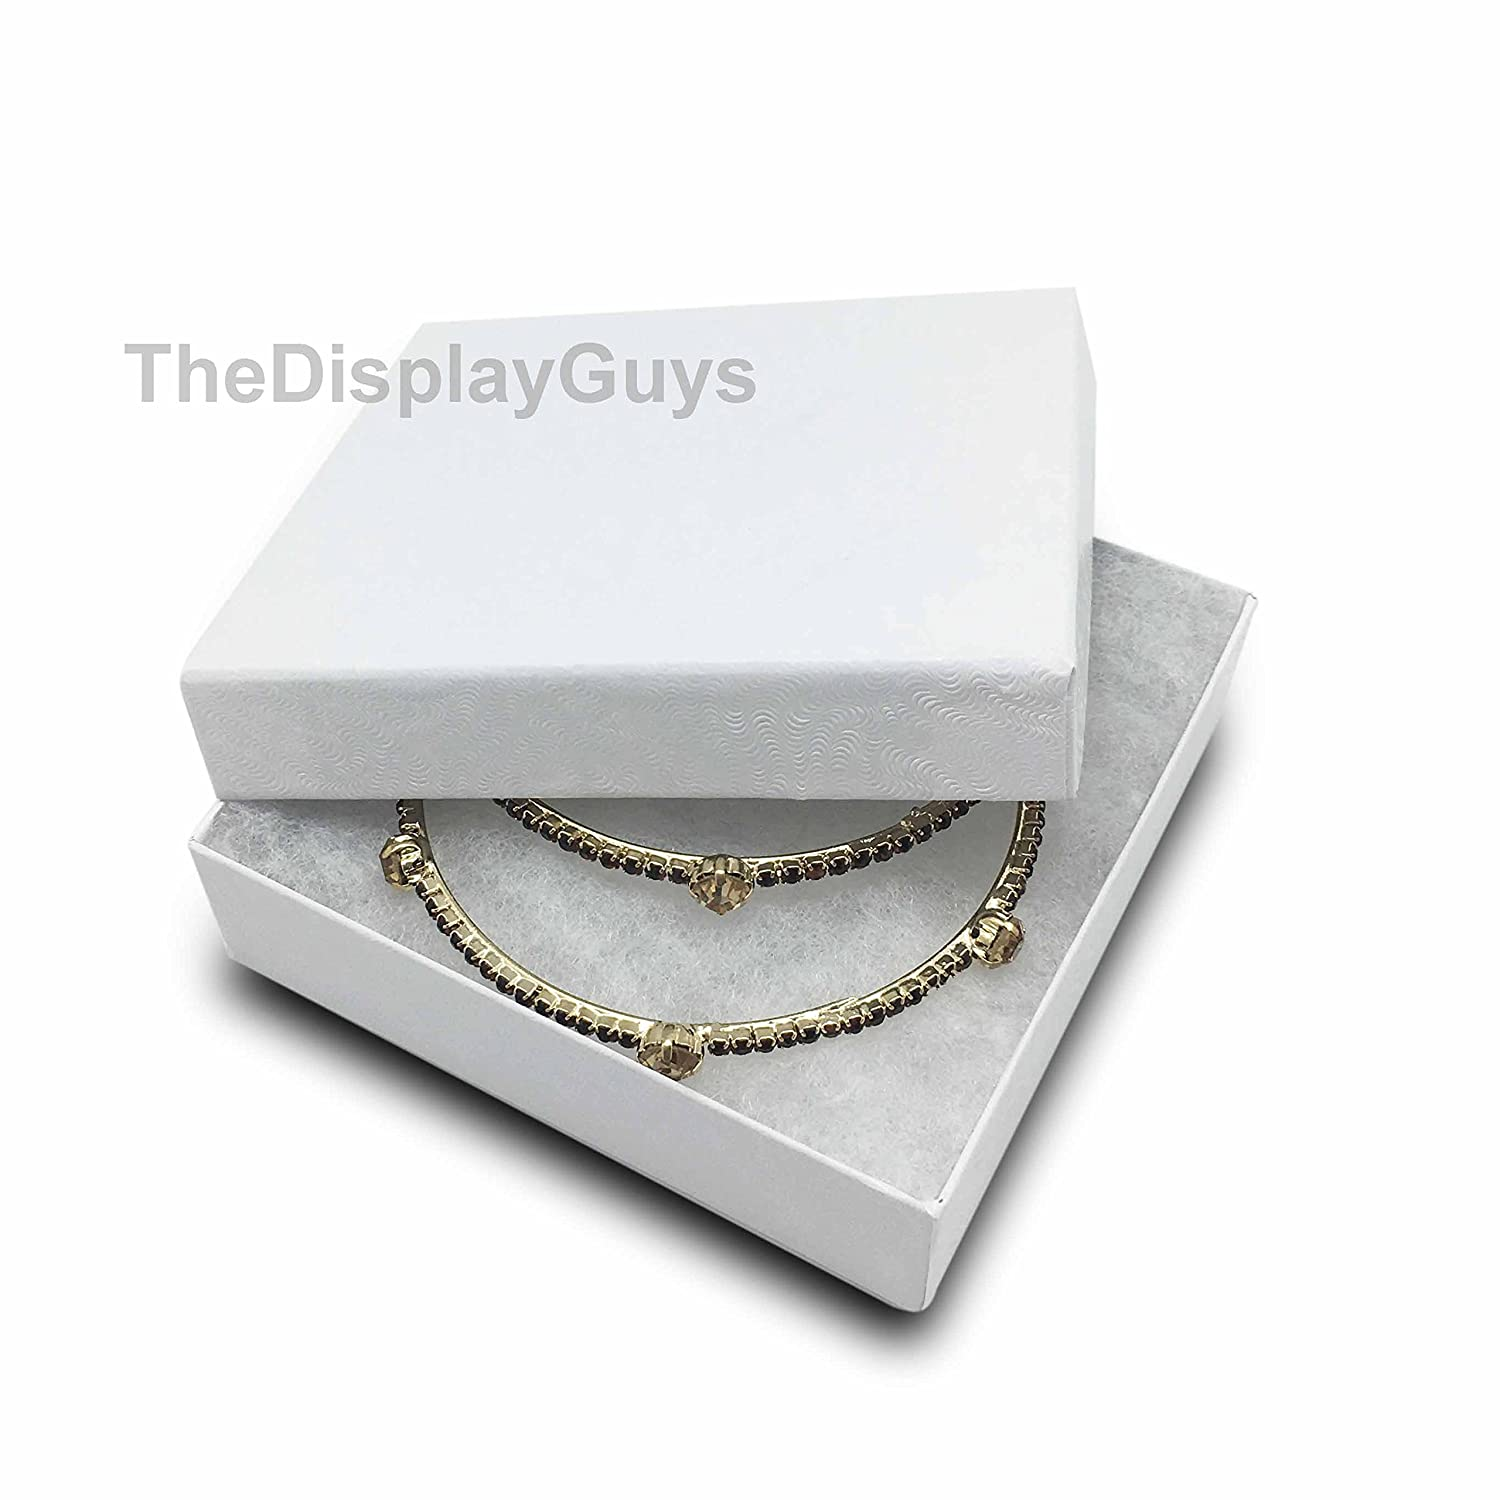 8x2x1 inches #82 The Display Guys Pack of 25 Cotton Filled Cardboard Paper White Jewelry Box Gift Case